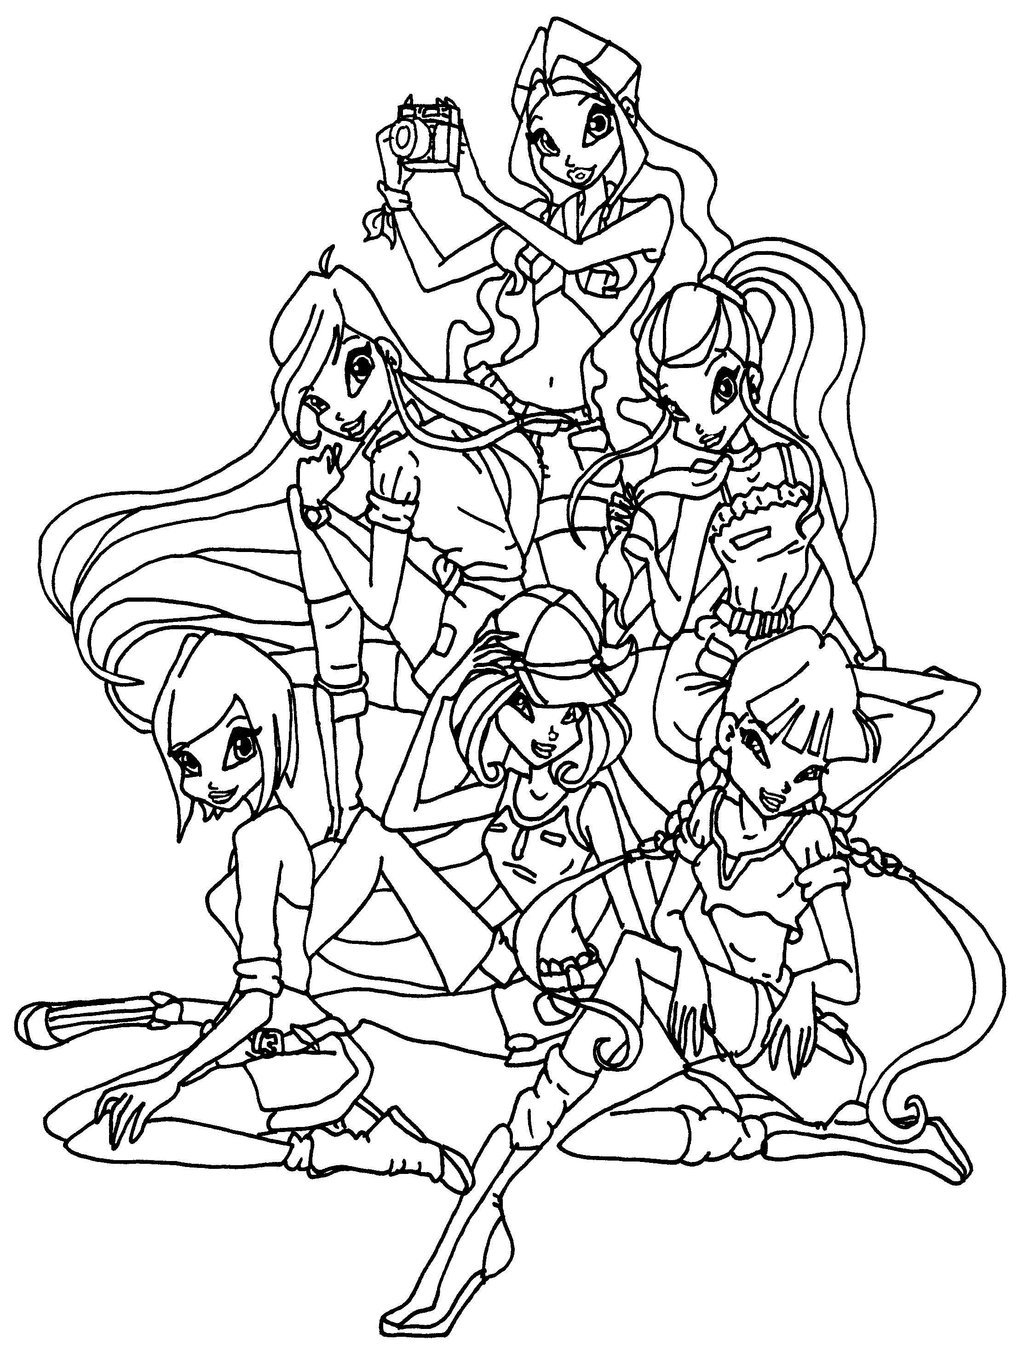 winx club coloring pages bloom bloom winx coloring pages download and print bloom winx pages bloom coloring club winx